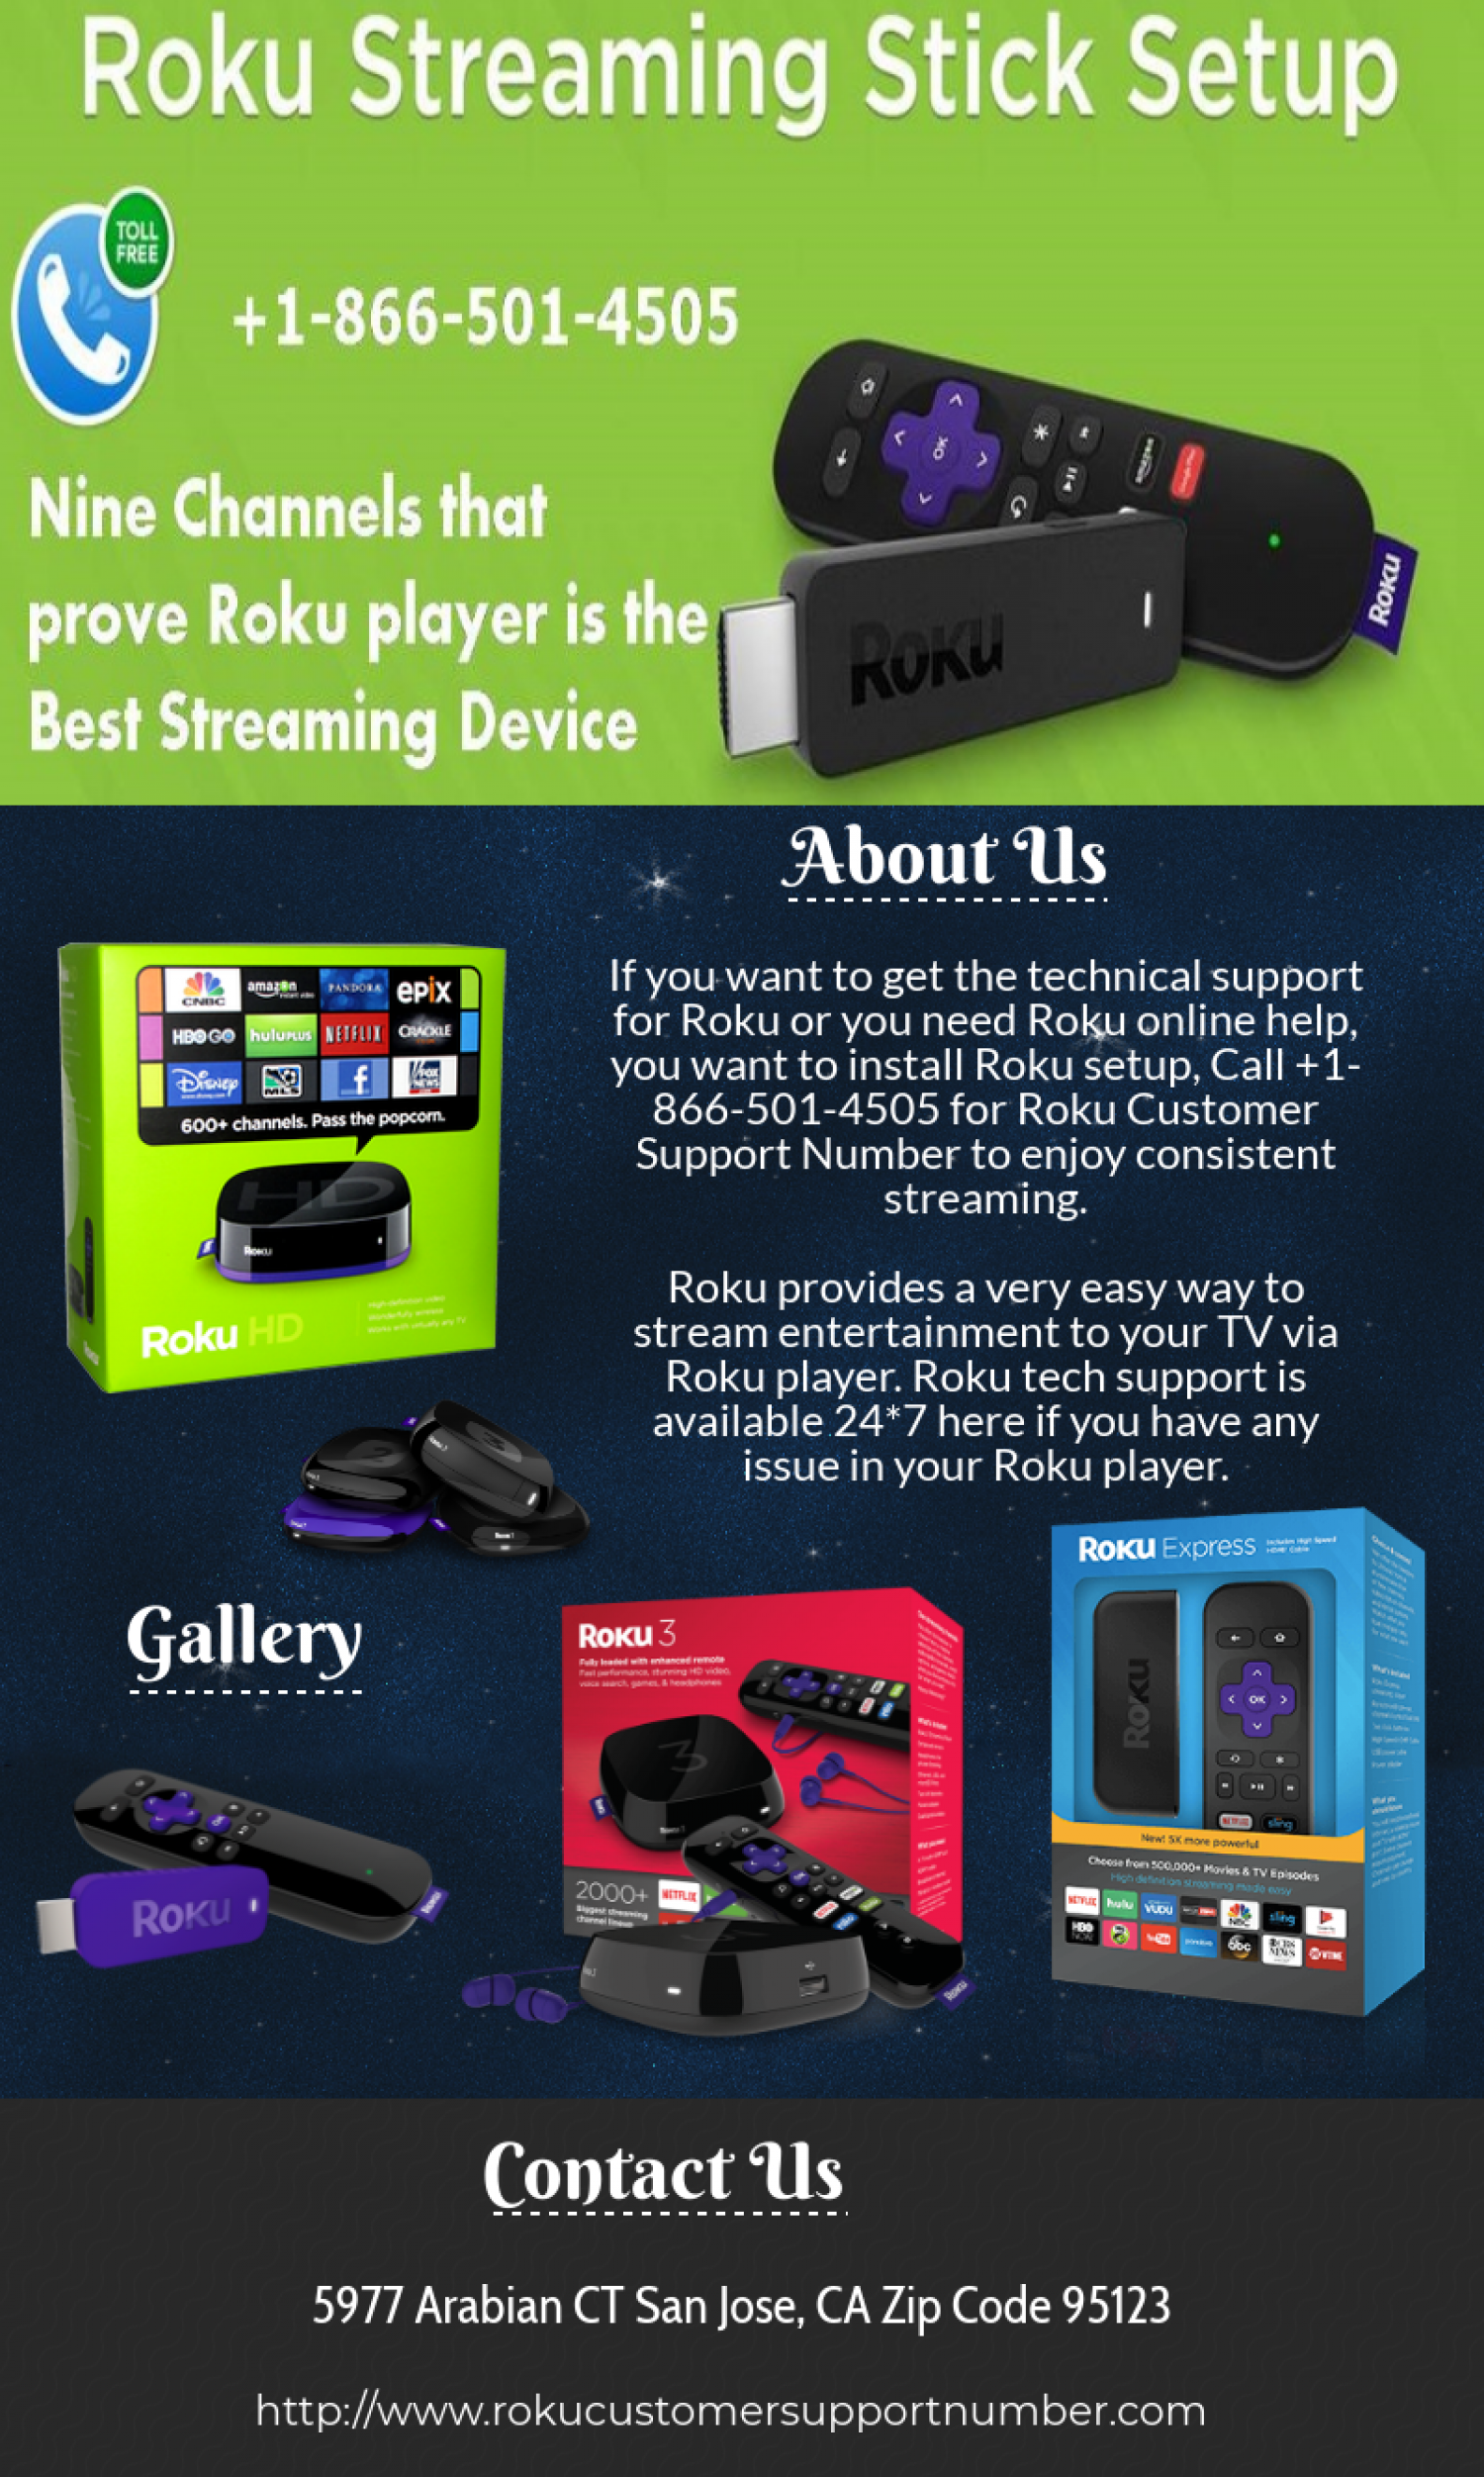 Roku Customer Support Number 1 866 501 4505 Infographic